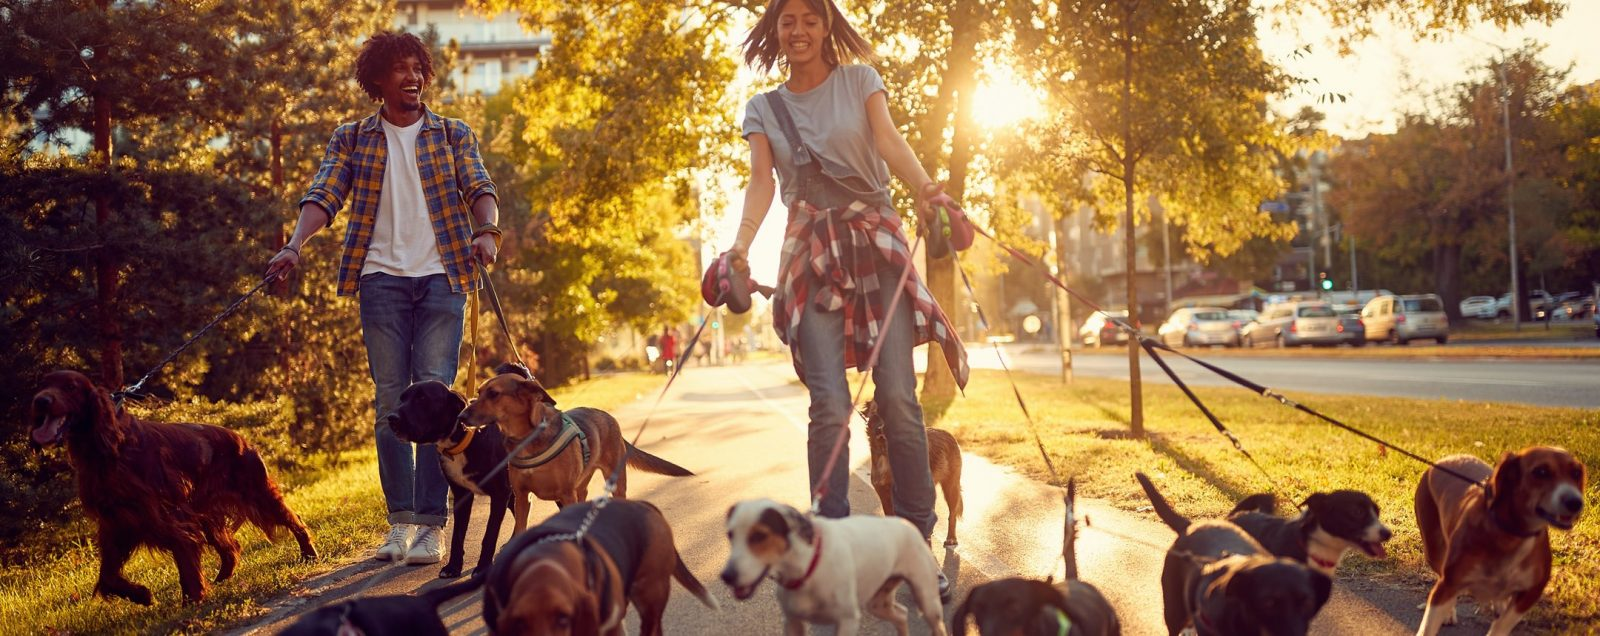 Woman walking with several dogs